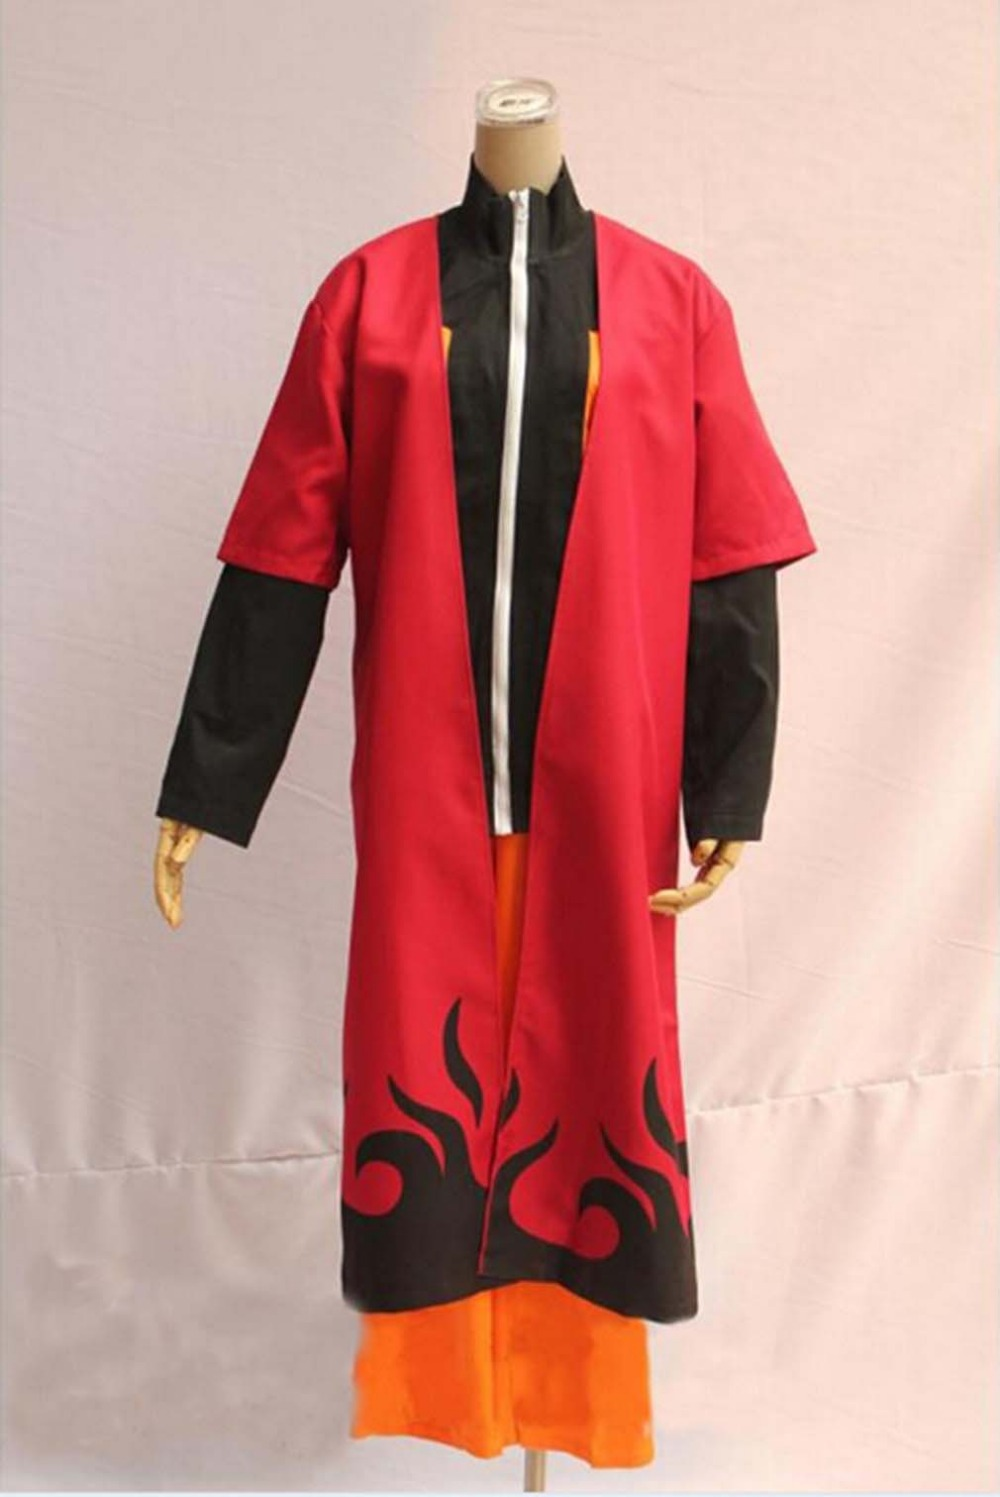 New Fashion Unisex Naruto Cosplay Costumes Japan Anime Uzumaki Naruto Cosplay Robes Cool Man Cool Woman Cosplay Costumes